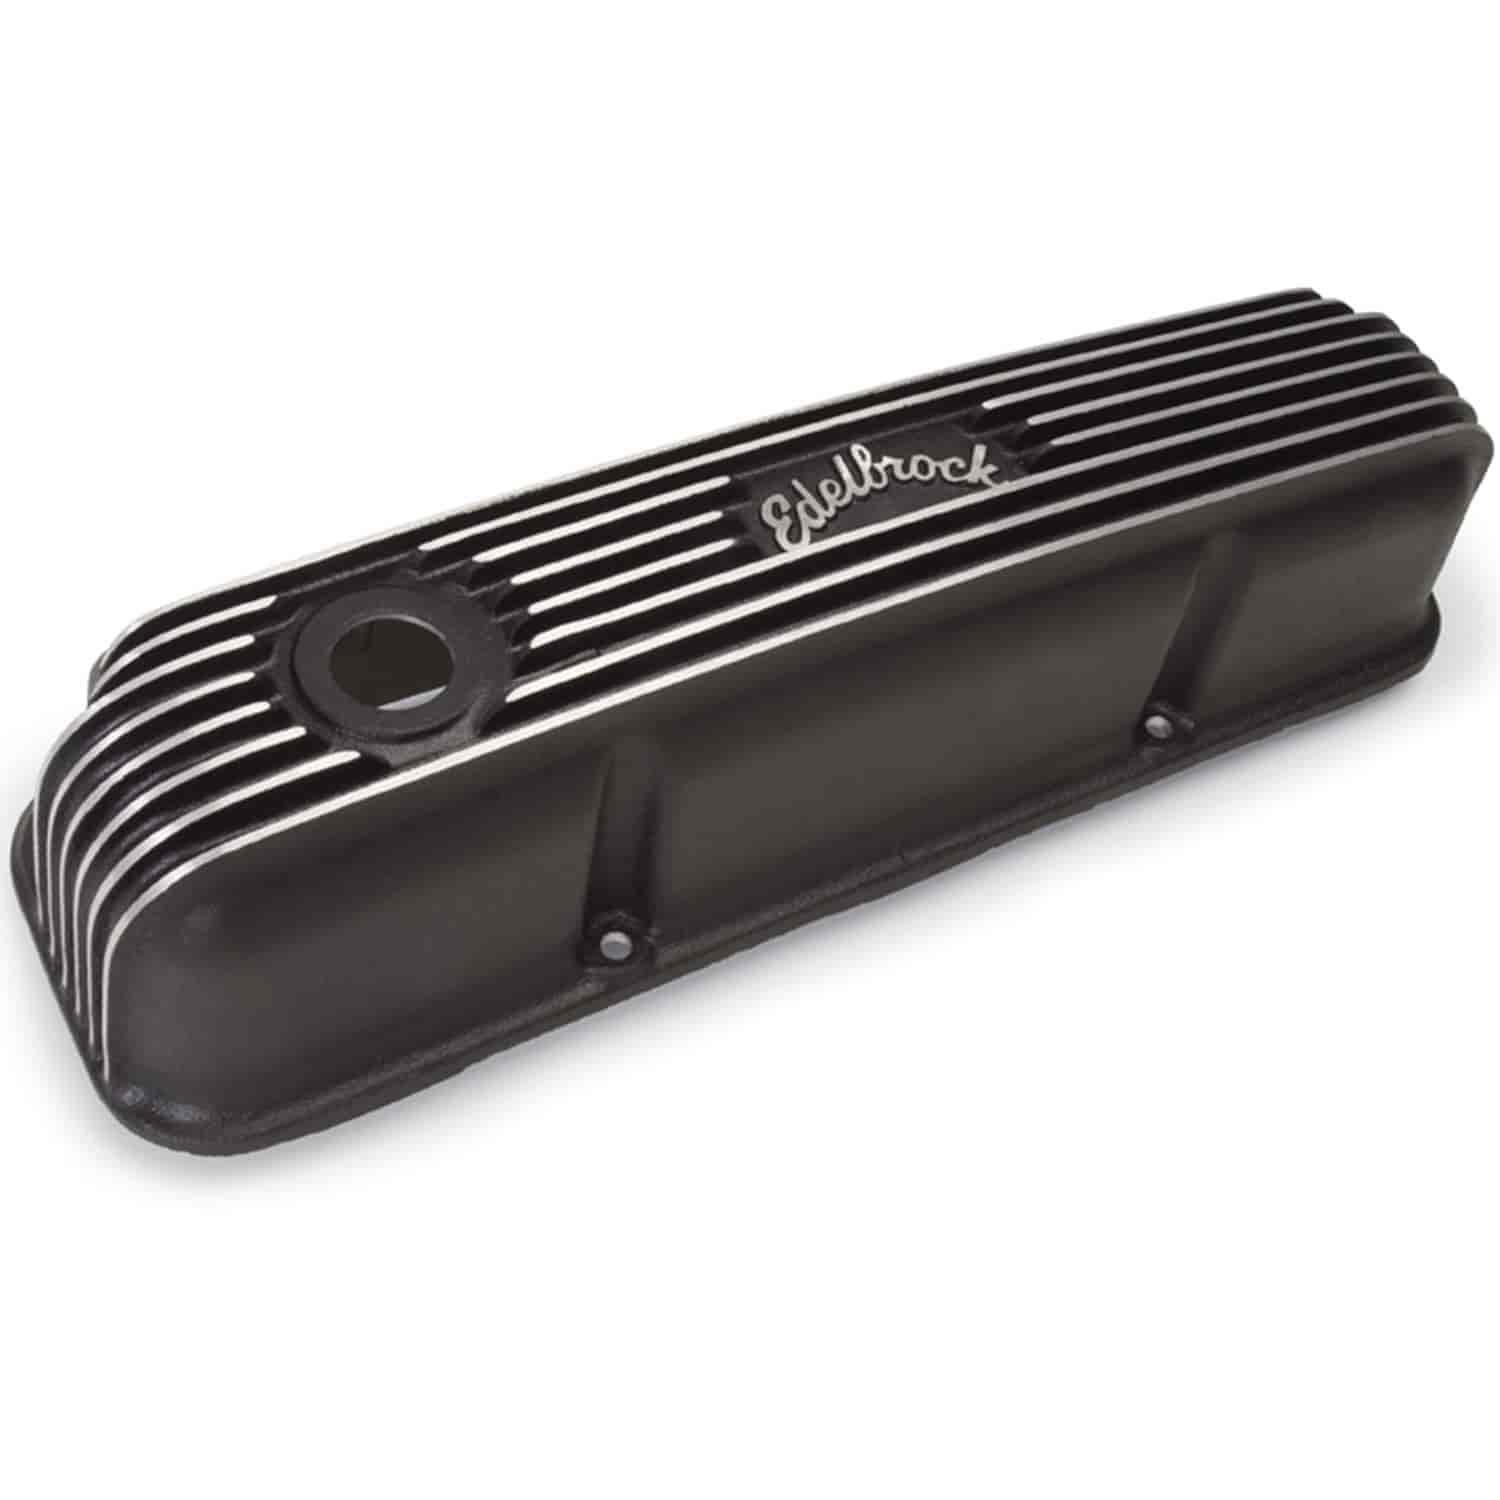 Edelbrock 41623 - Edelbrock Classic Series Valve Covers & Air Cleaners